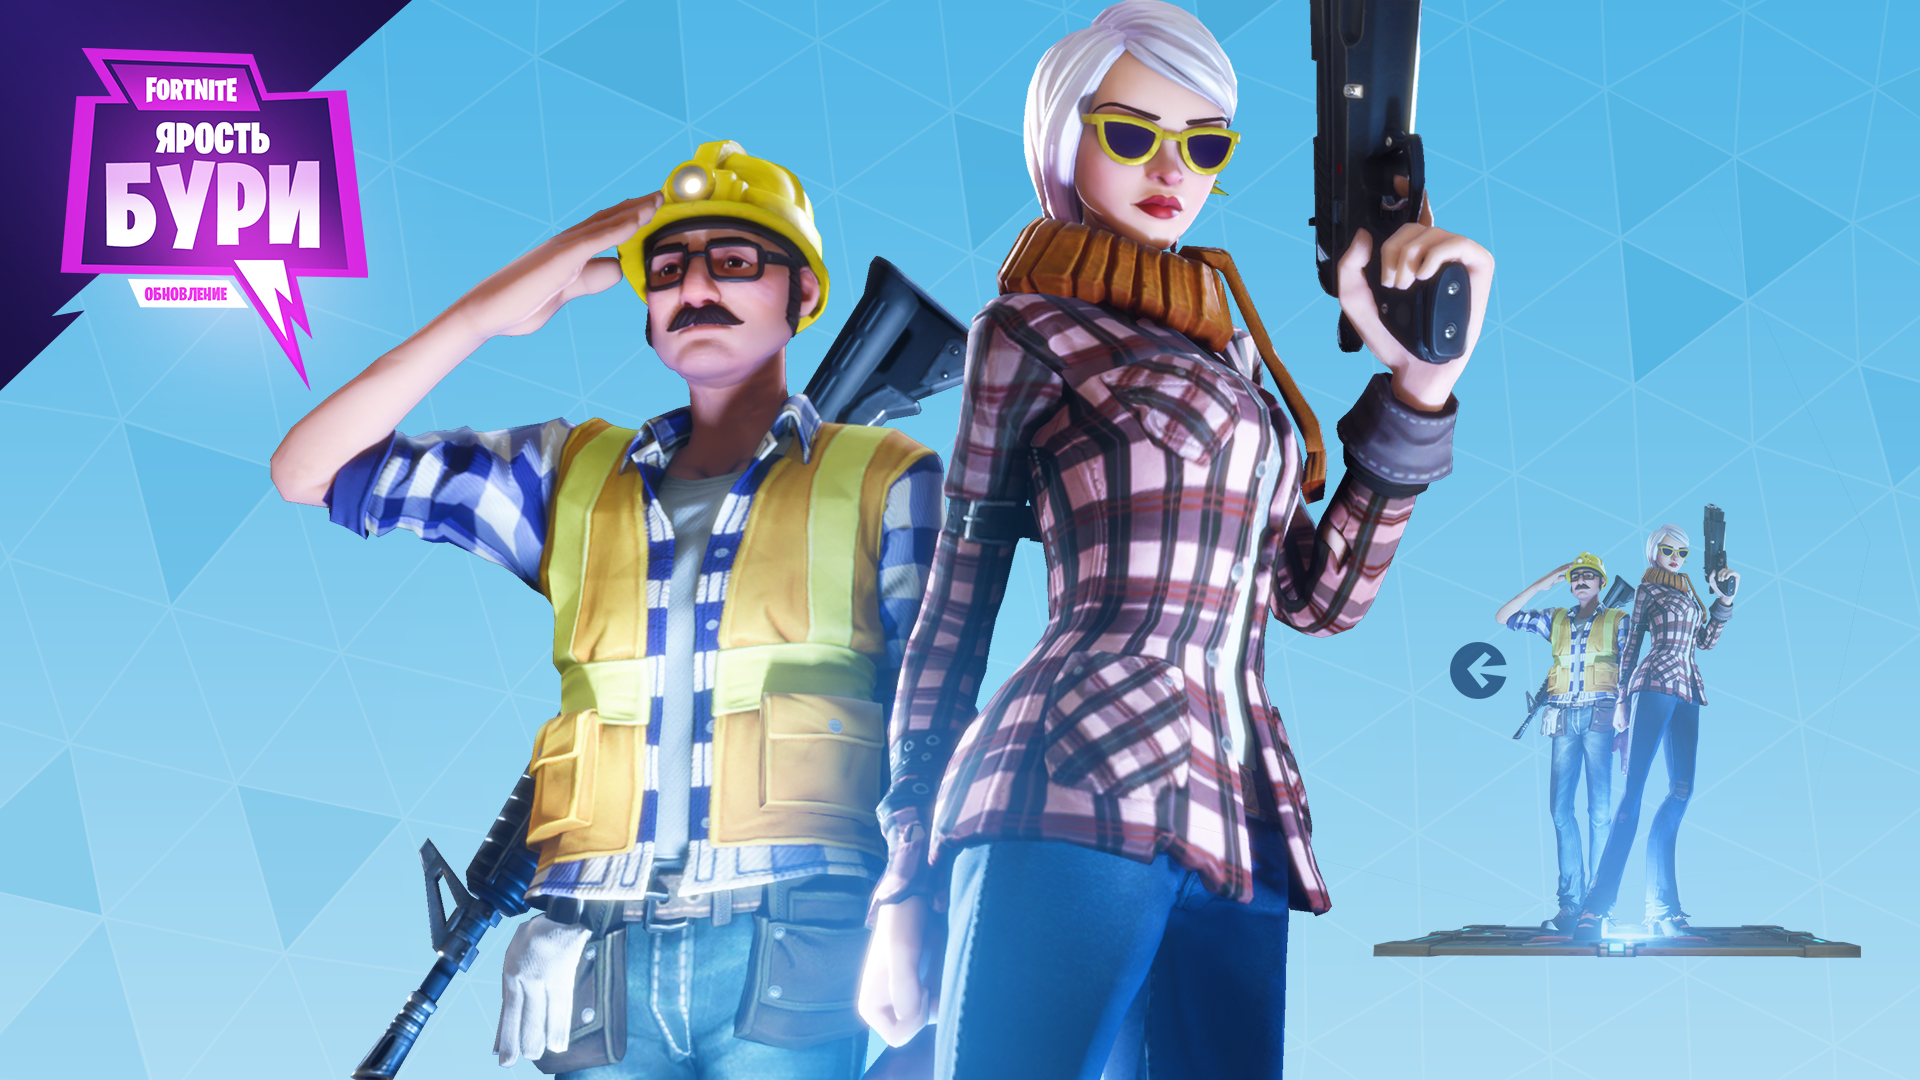 Fortnite%2Fblog%2Fsurvive-the-storm---release-notes%2FRUS_Defenders-1920x1080-08eeaab53843204bd329892d9c8349e8341e7a24